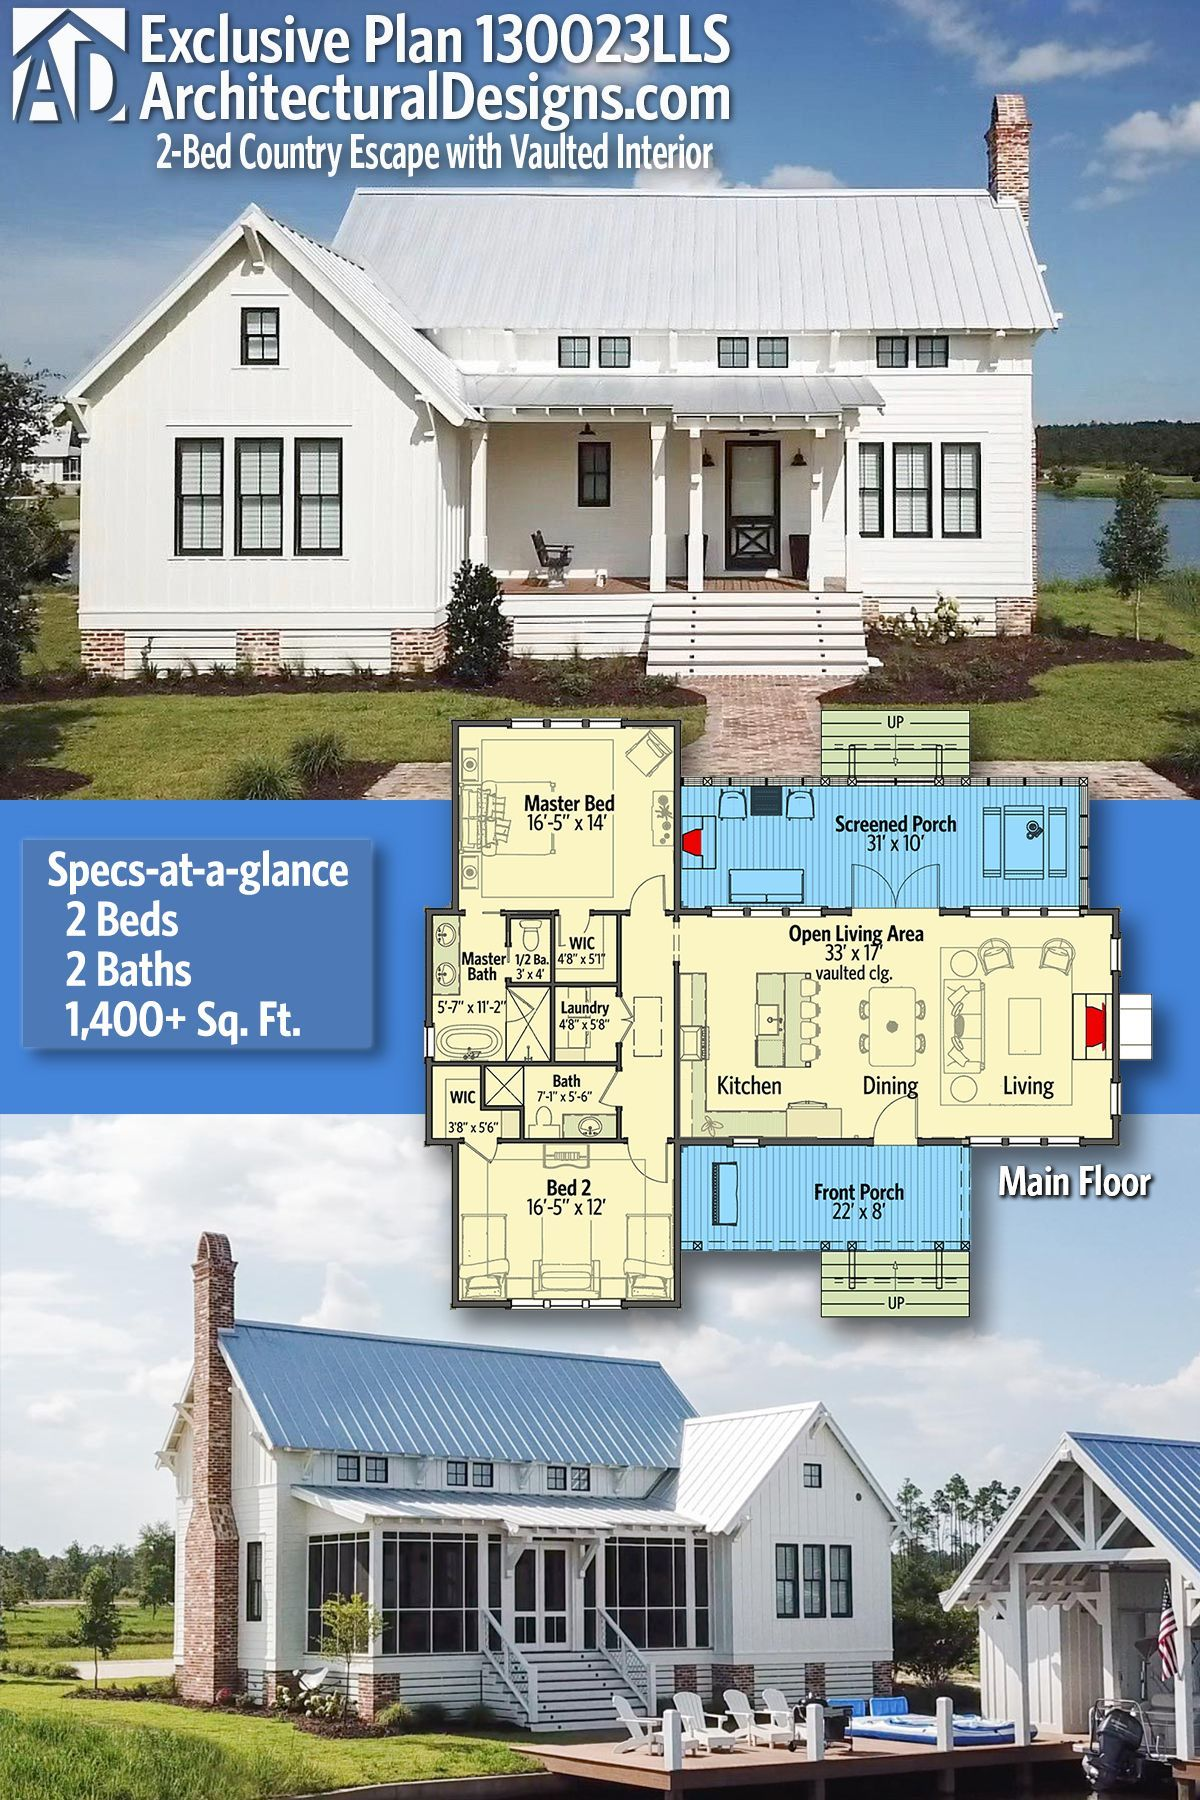 Introducing Architectural Designs Exclusive 2 Bedroom Country Escape Plan 130023lls With 2 Beds 2 Full Baths In With Images Farmhouse Plans House Plans Small House Plans